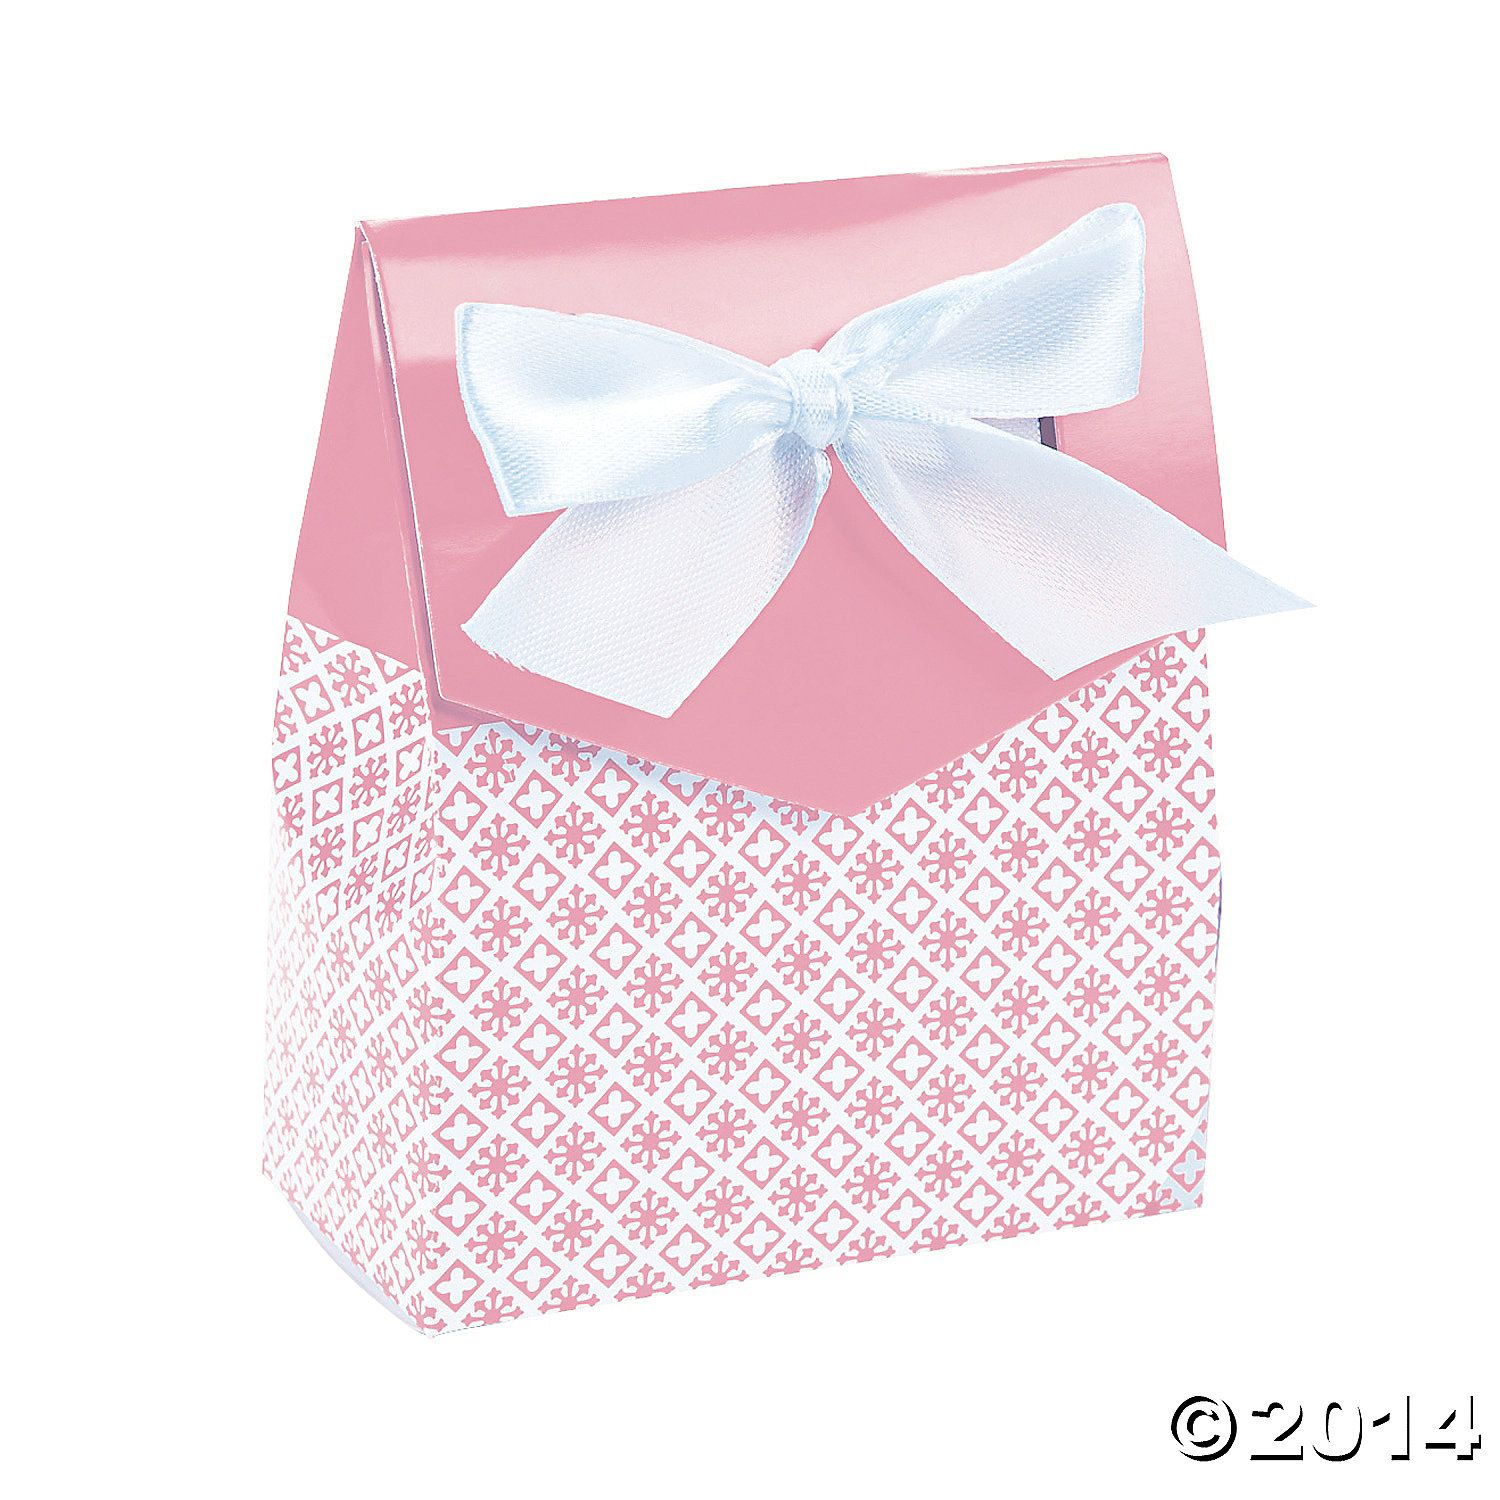 Tent Favor Boxes with Bow | Tents, Favours and Box